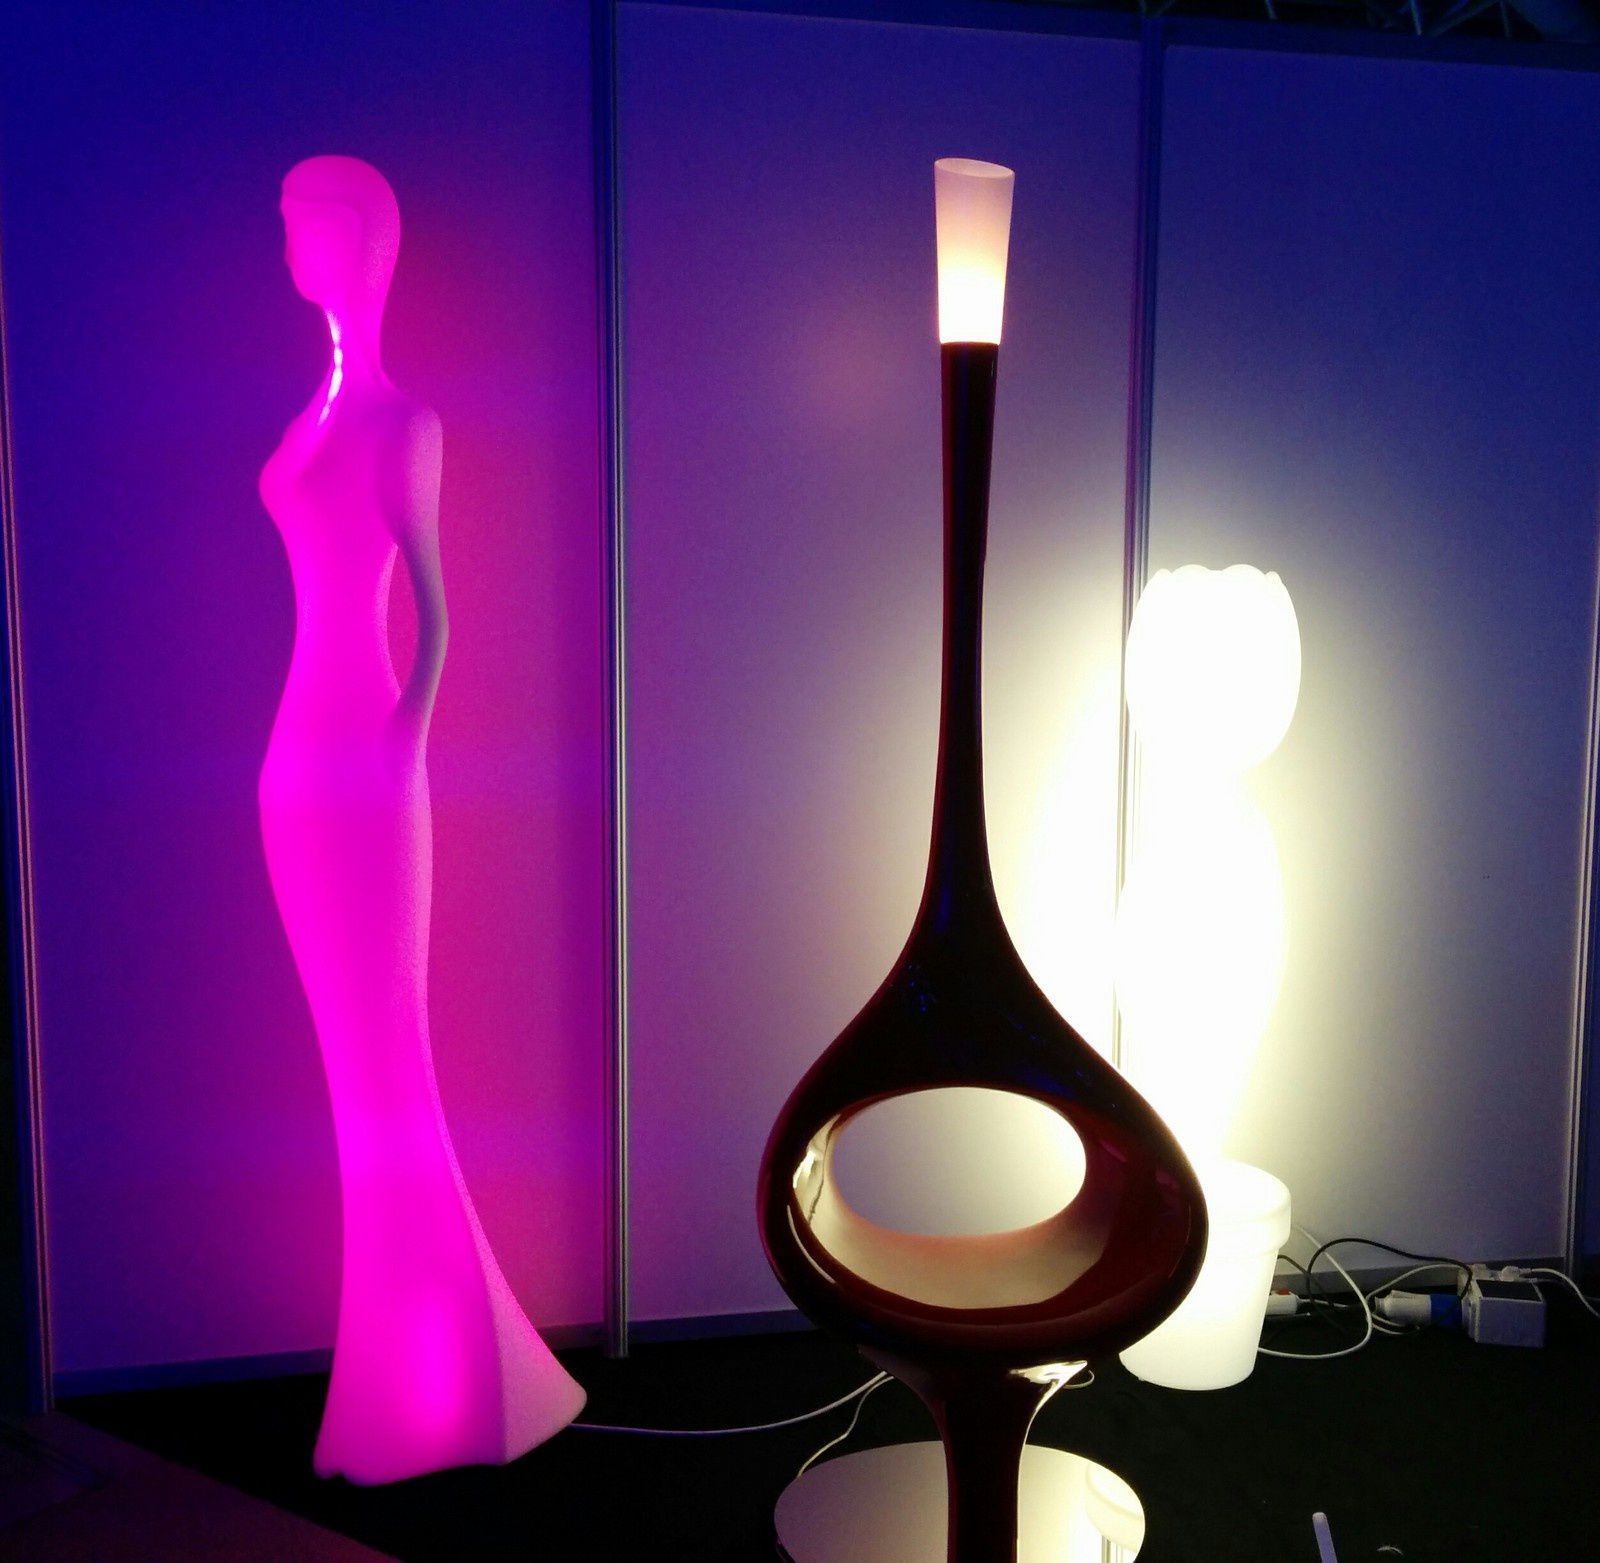 spot lumiere au salon du mics de monaco luminaires design. Black Bedroom Furniture Sets. Home Design Ideas